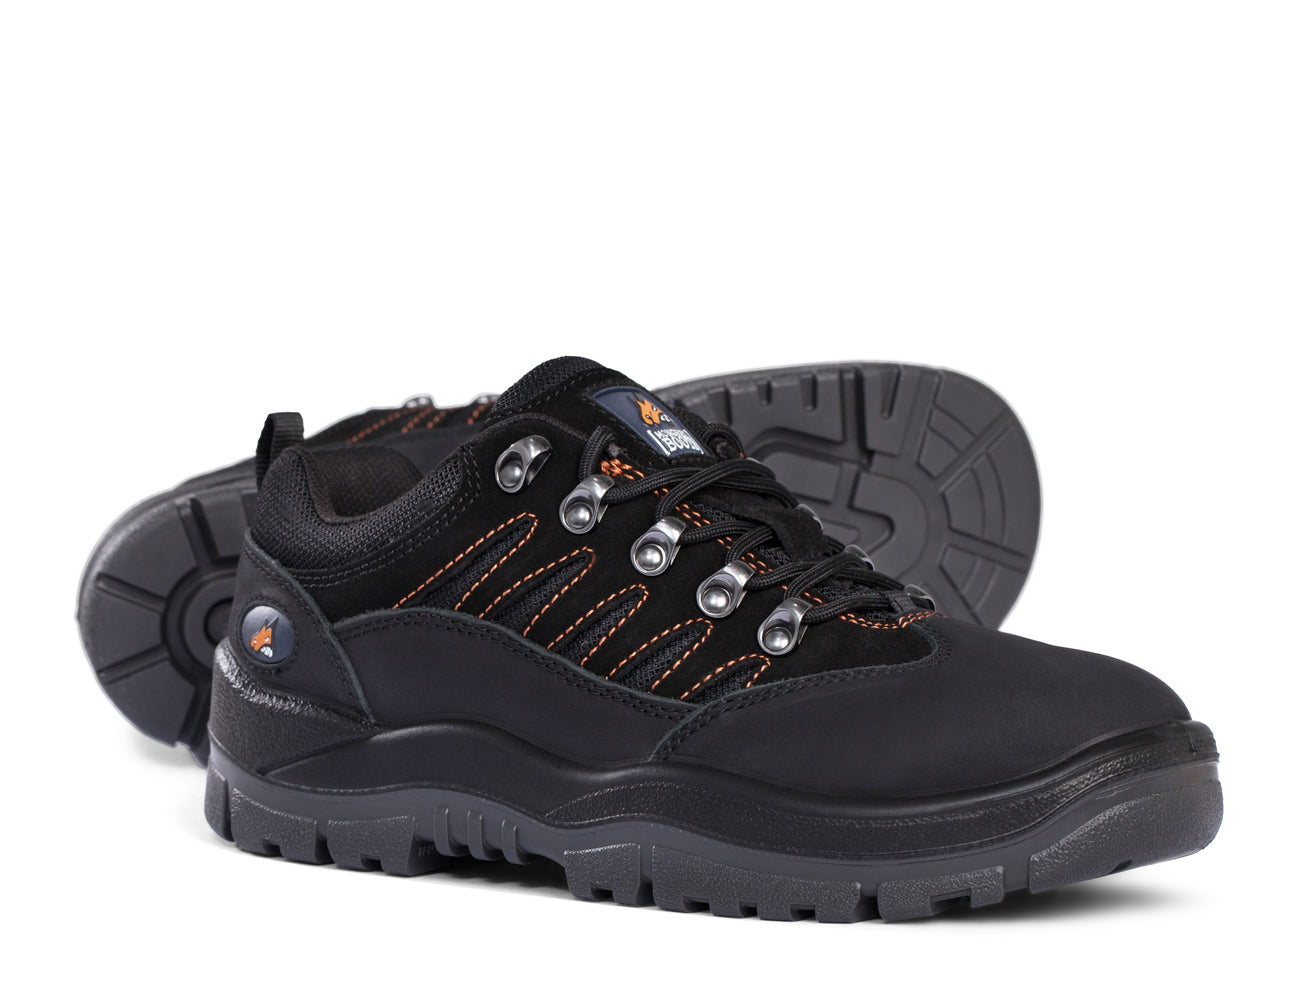 Mongrel Hiker-Style Lace Up Safety Shoes - 390080